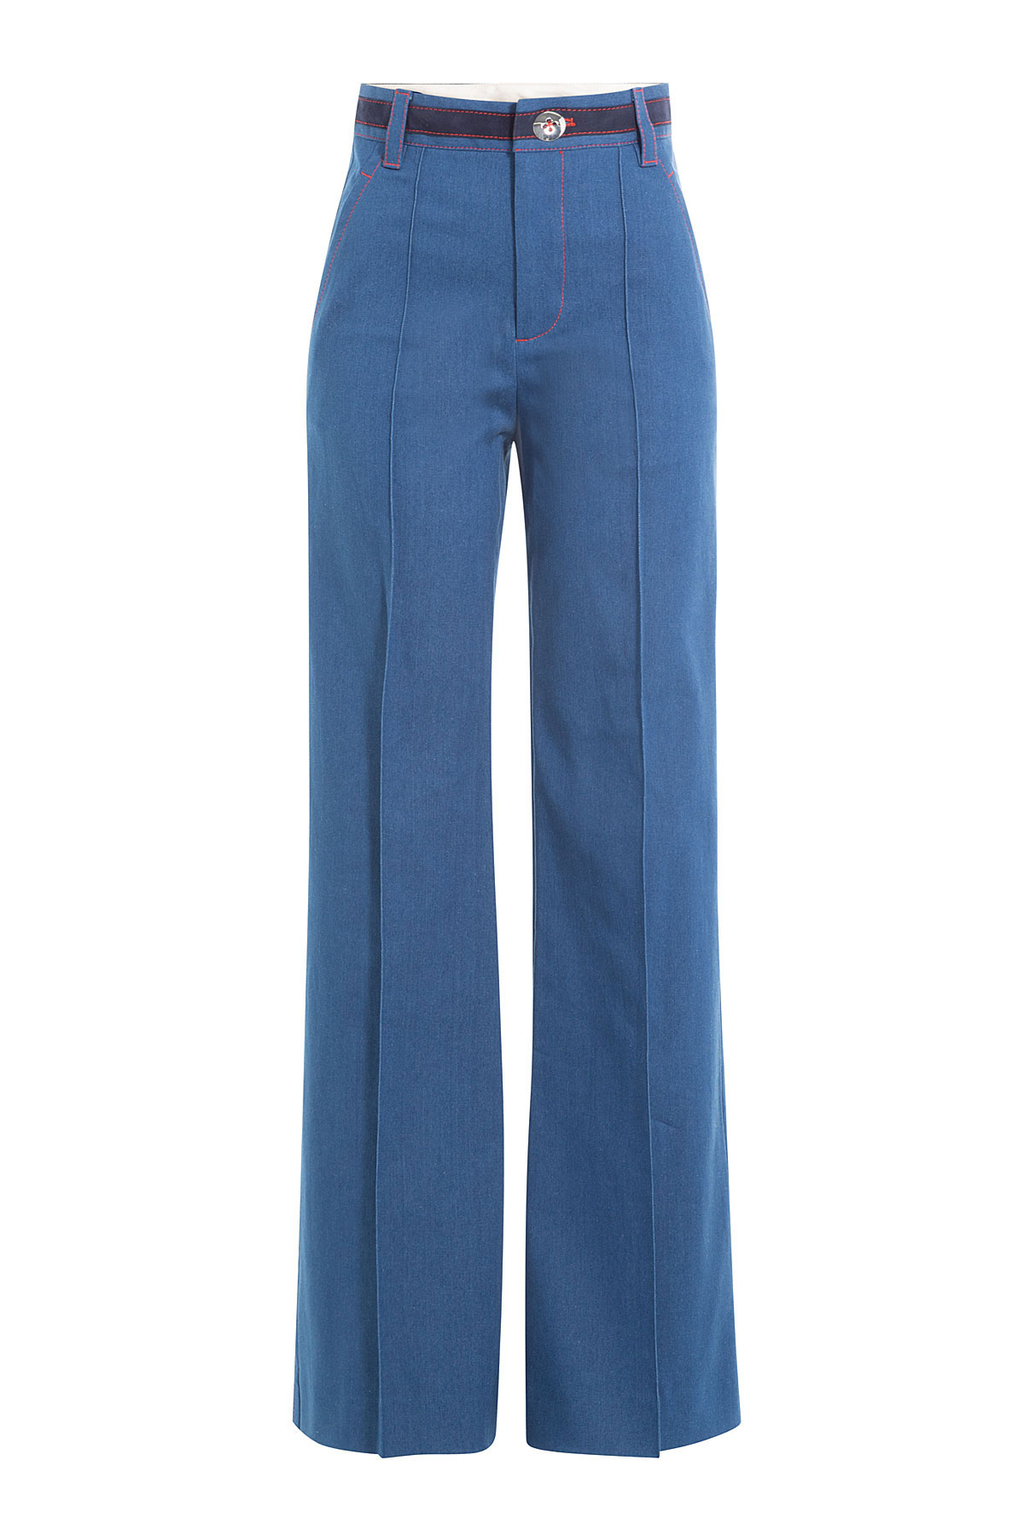 Wide Leg Jeans With Contrast Thread - length: standard; pattern: plain; waist: high rise; style: wide leg; predominant colour: denim; occasions: casual, evening, creative work; fibres: cotton - stretch; texture group: denim; pattern type: fabric; wardrobe: basic; season: a/w 2016